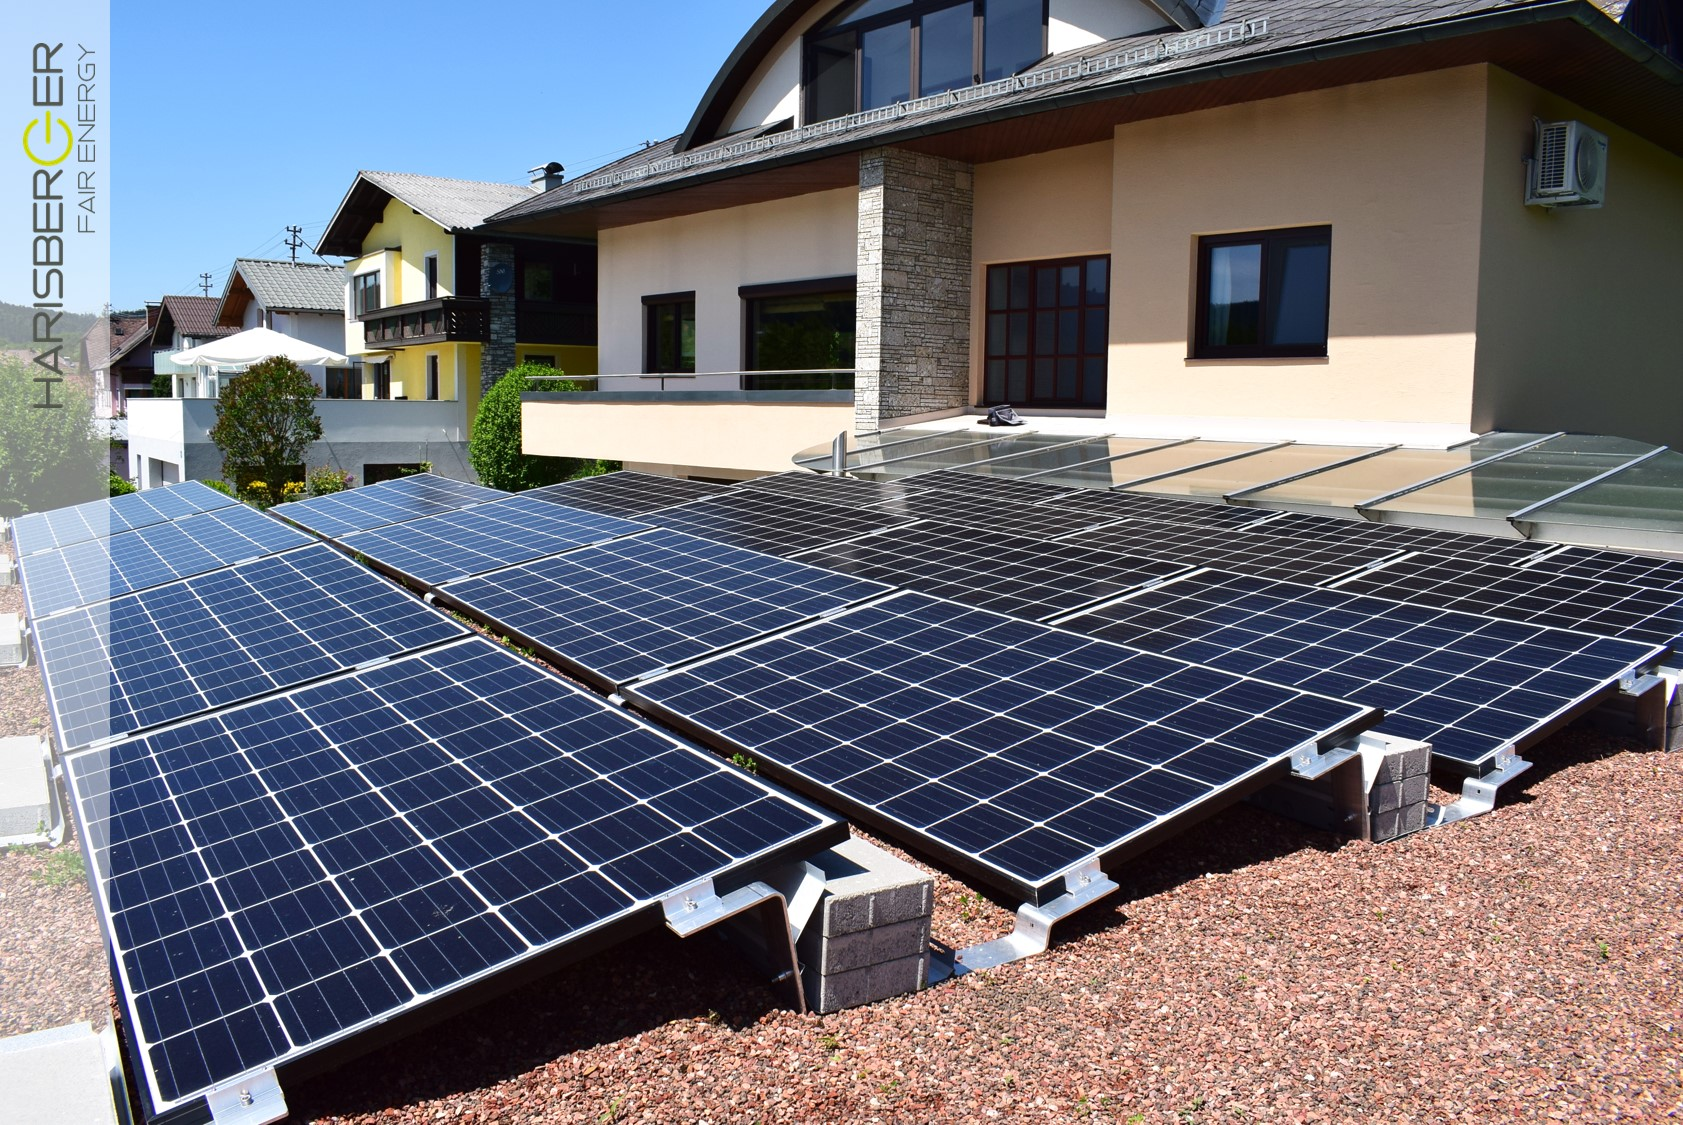 PV-Anlage, Einfamilienhaus, Ottnang am Hausruck 6,1 kWp